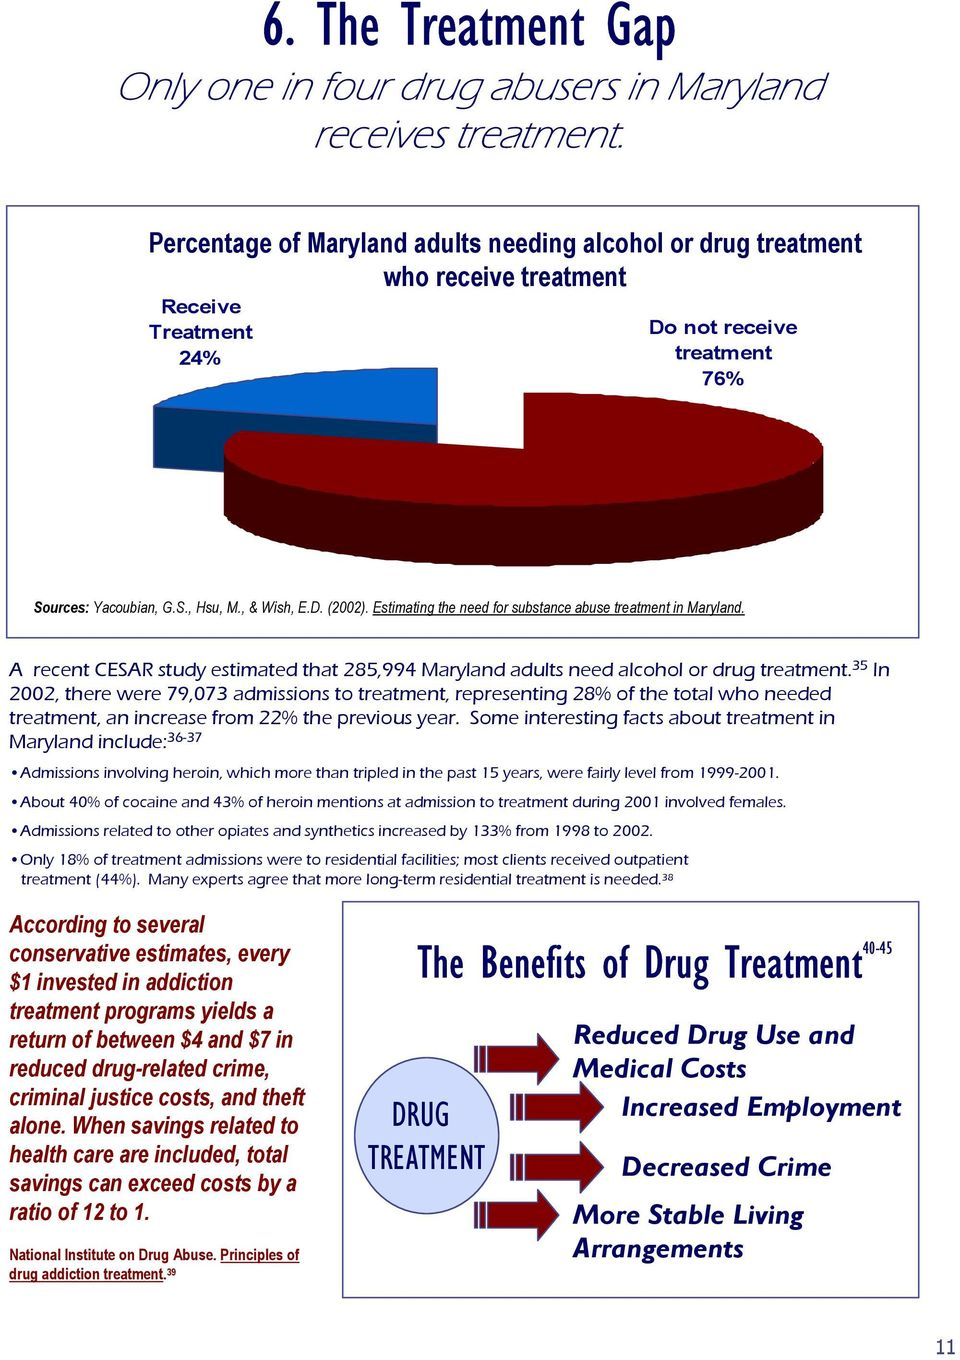 Estimating the need for substance abuse treatment in Maryland. A recent CESAR study estimated that 285,994 Maryland adults need alcohol or drug treatment.